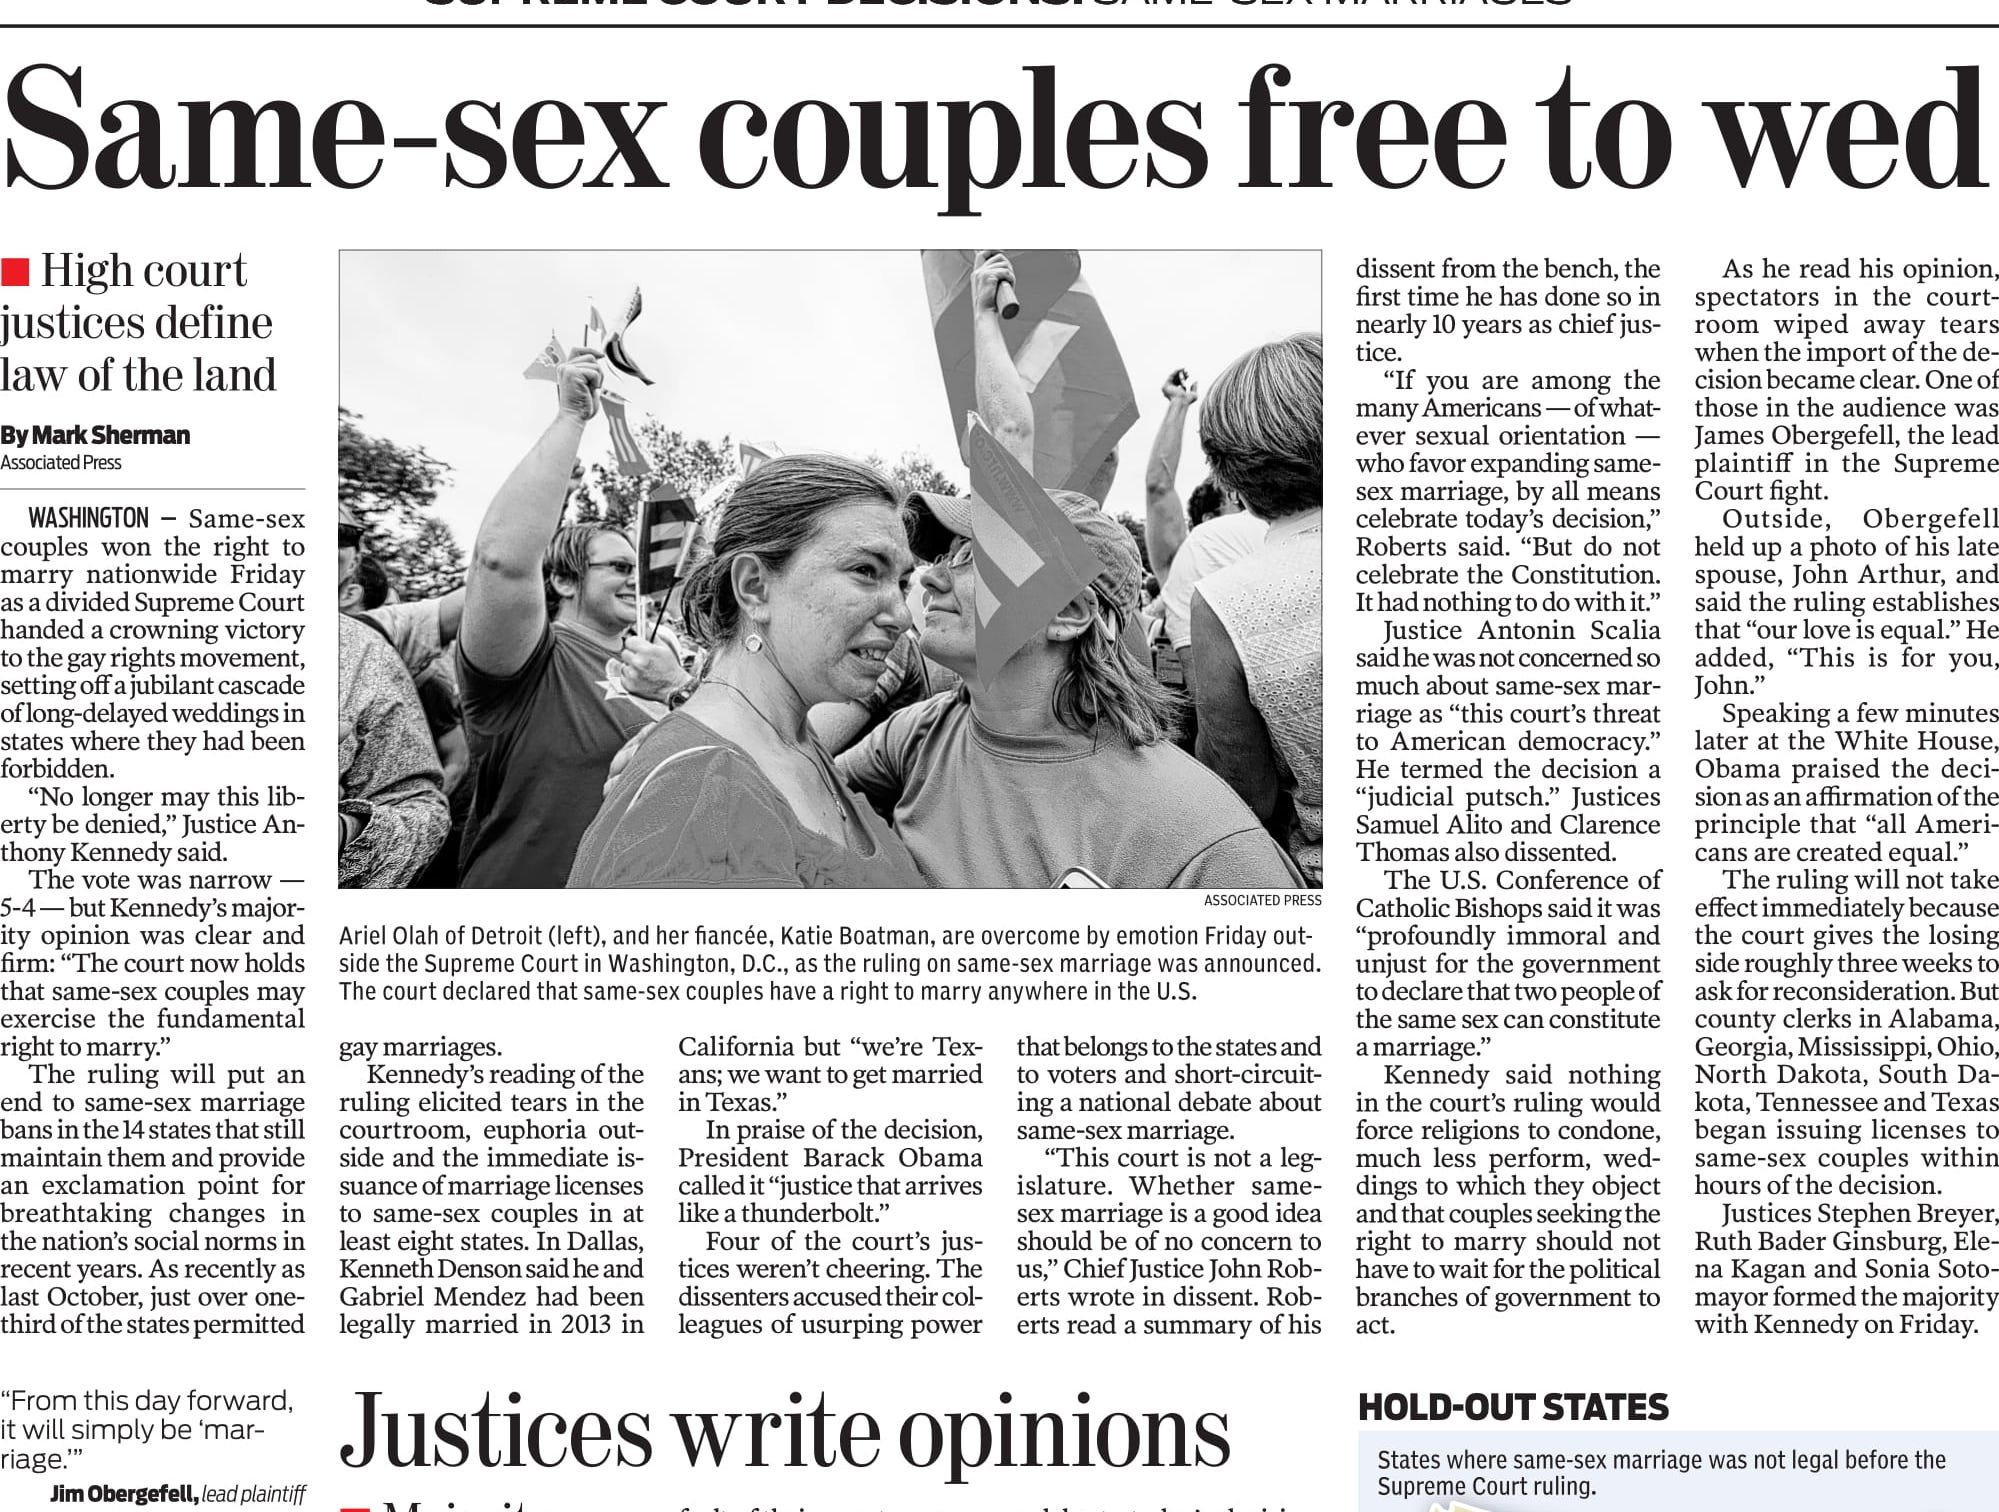 A page in the Caller-Times on June 27, 2015 dissecting the recent decision by the Supreme Court to legalize same-sex weddings nationwide.